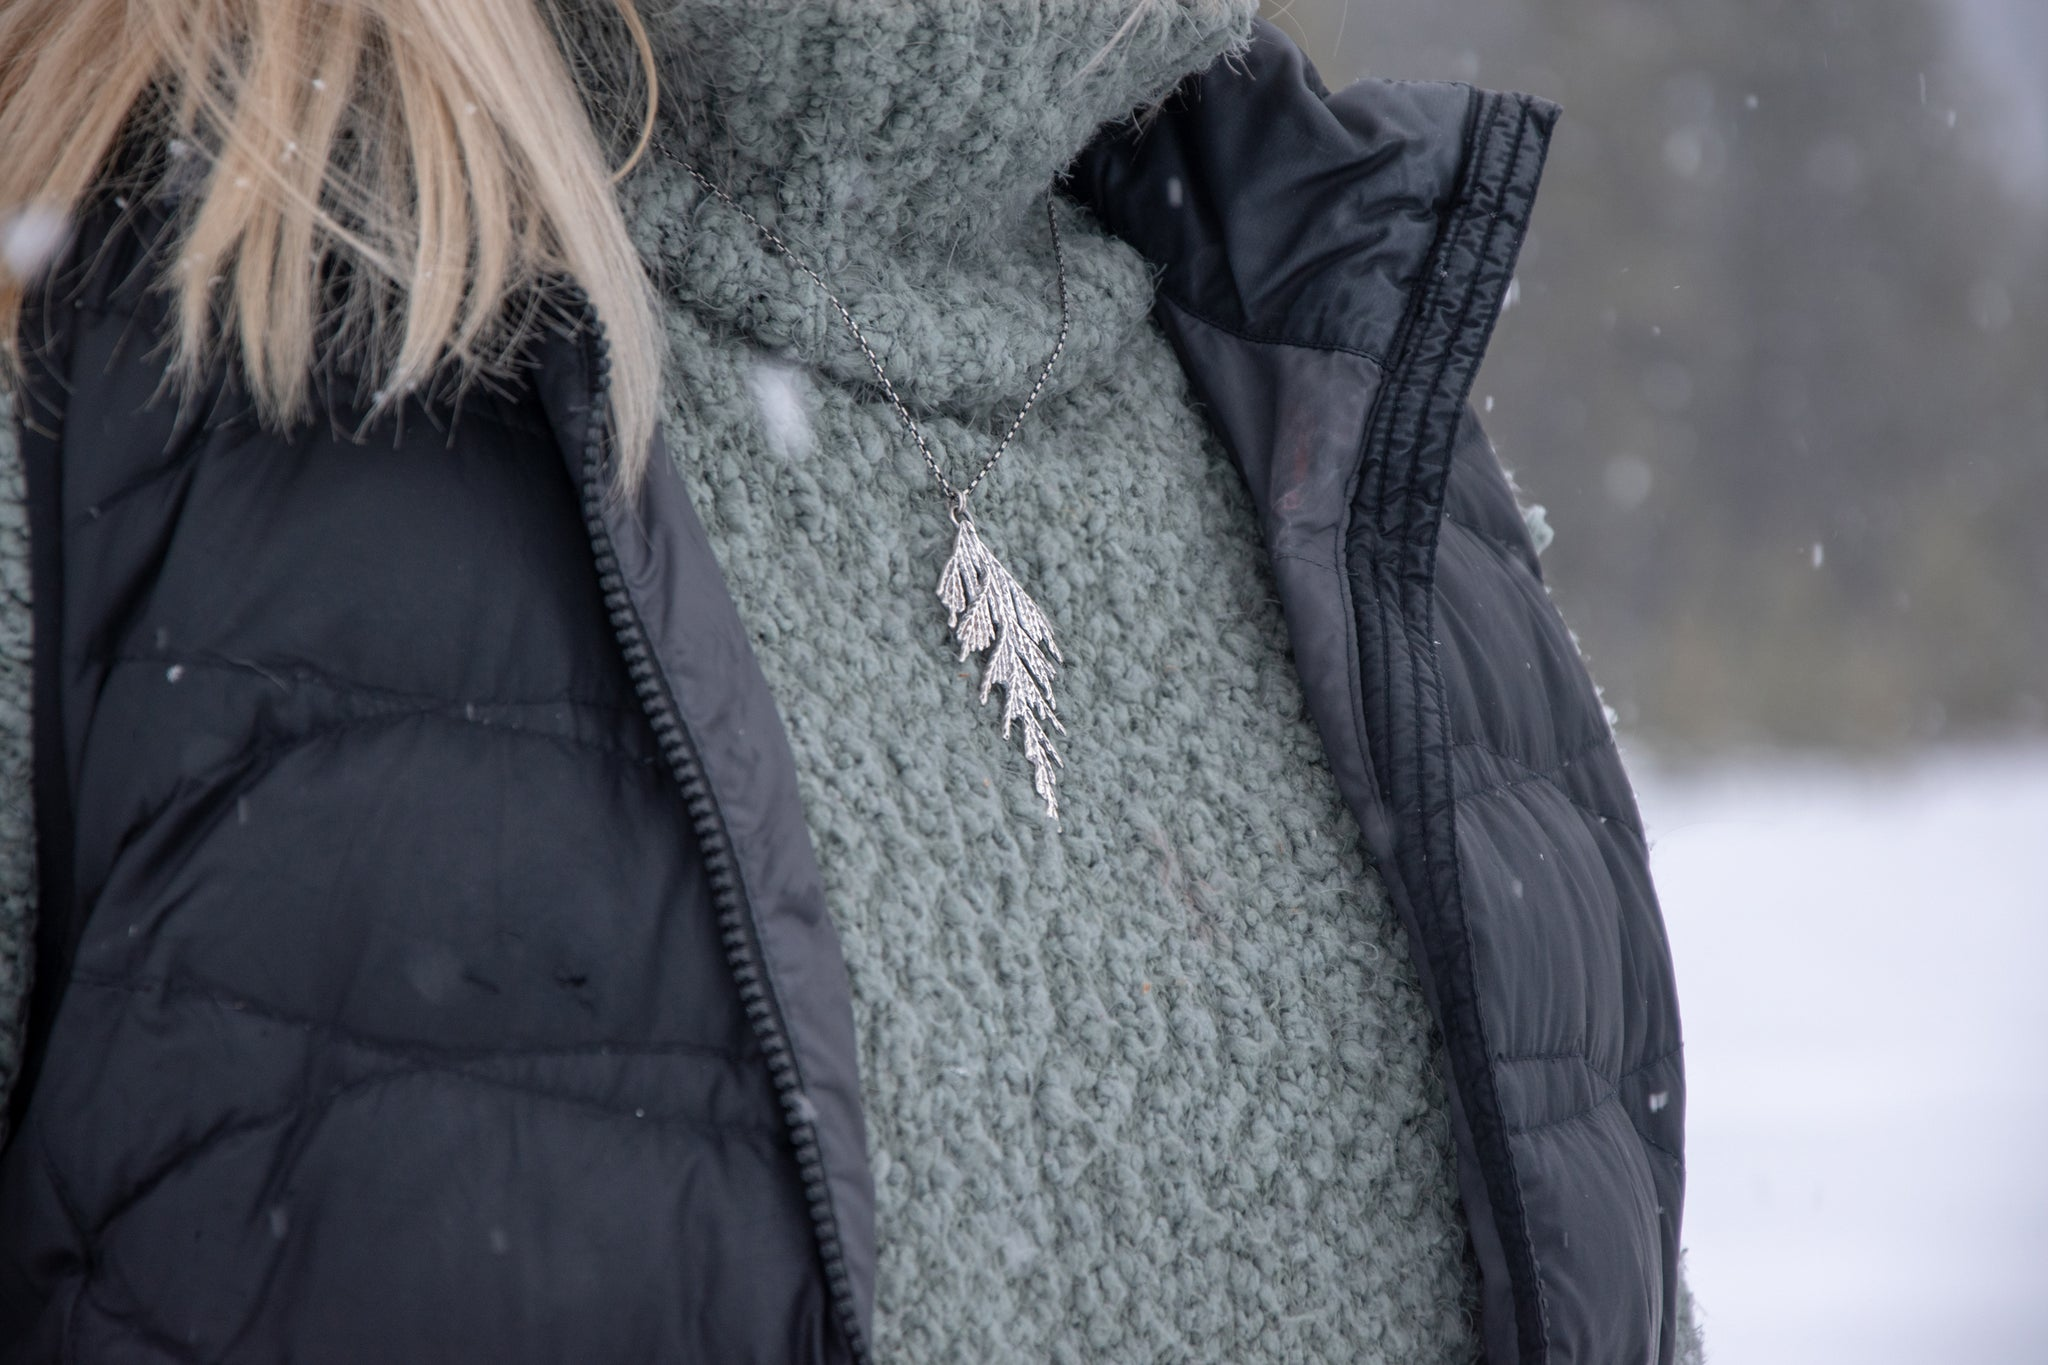 Woman wearing handmade silver cedar necklace in winter